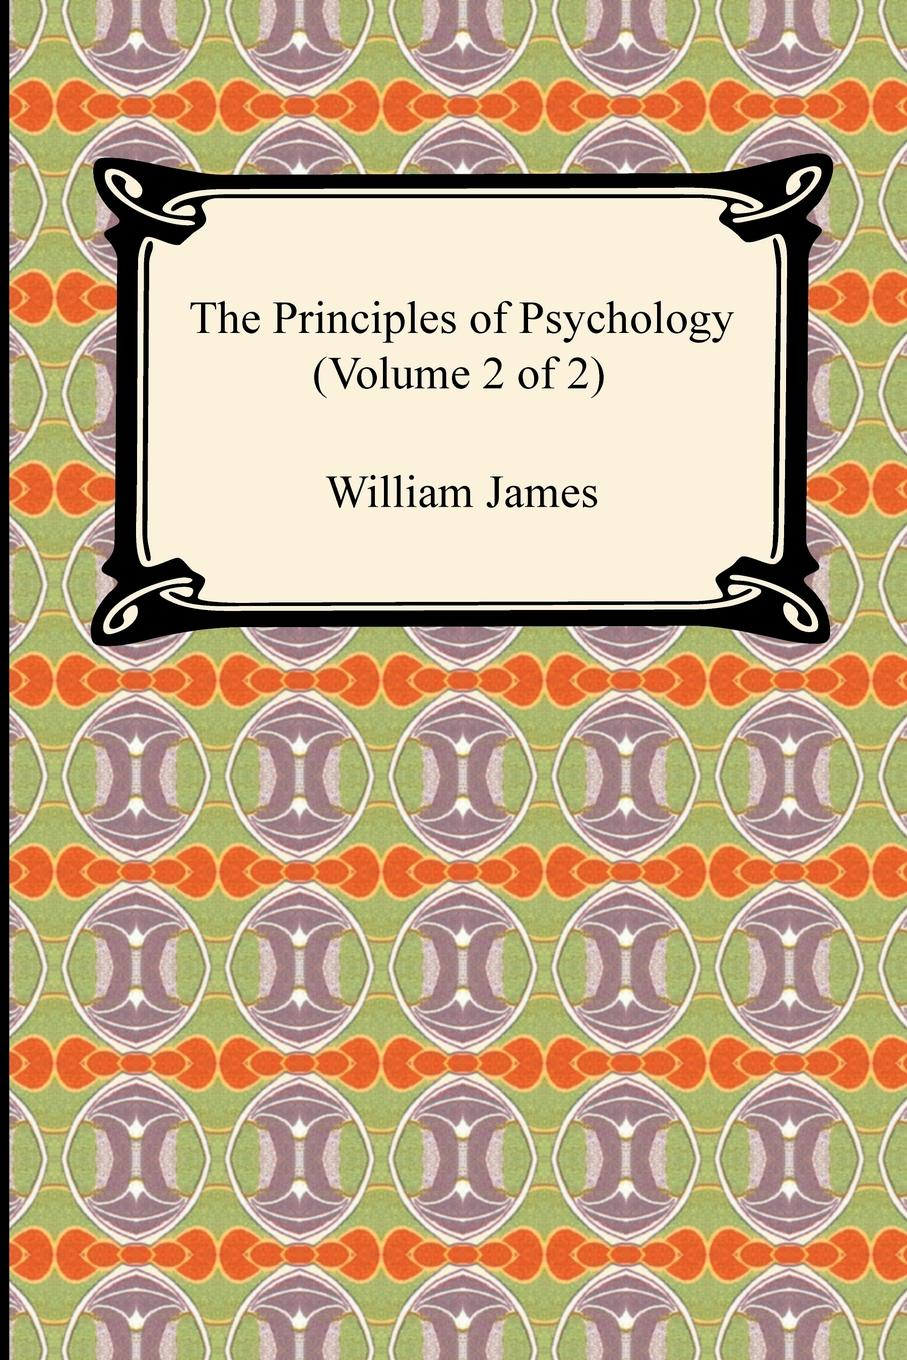 William James The Principles of Psychology (Volume 2 of 2) william james the principles of psychology volume 2 of 2